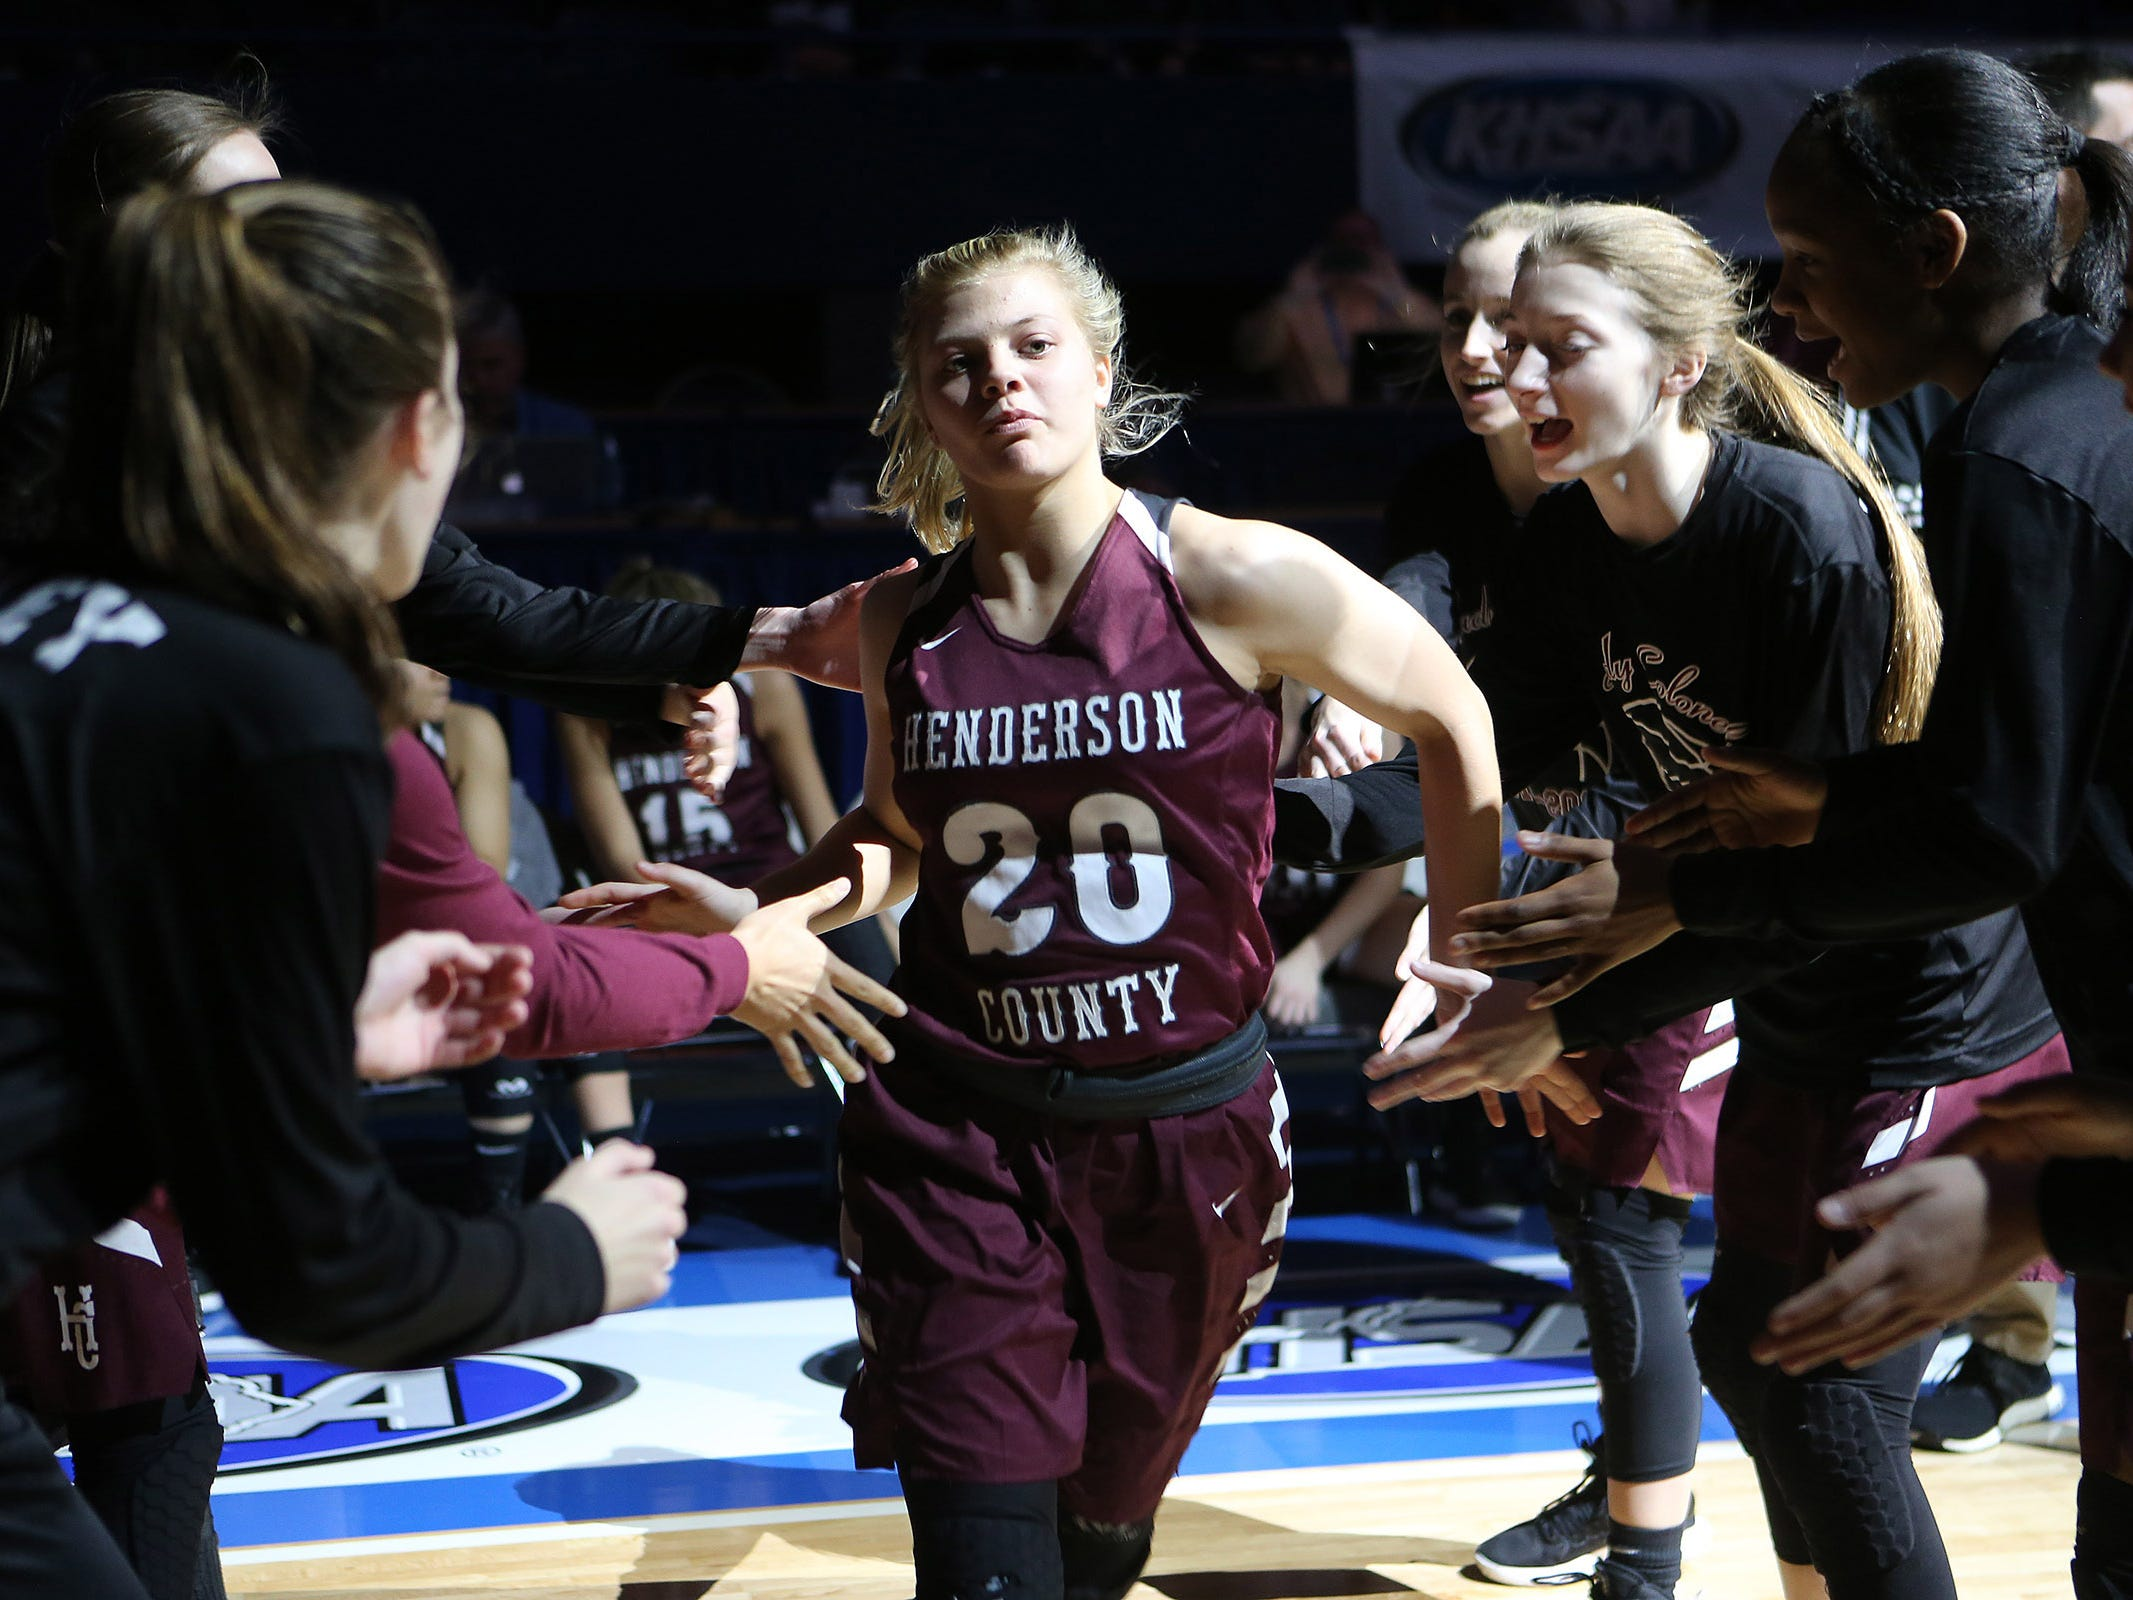 Henderson County's Kaytlan Kemp slapped hands with teammates during introduction of starting lineups Friday against North Laurel in Game 8 of the KHSAA Girls' Sweet 16 at Rupp Arena in Lexington.